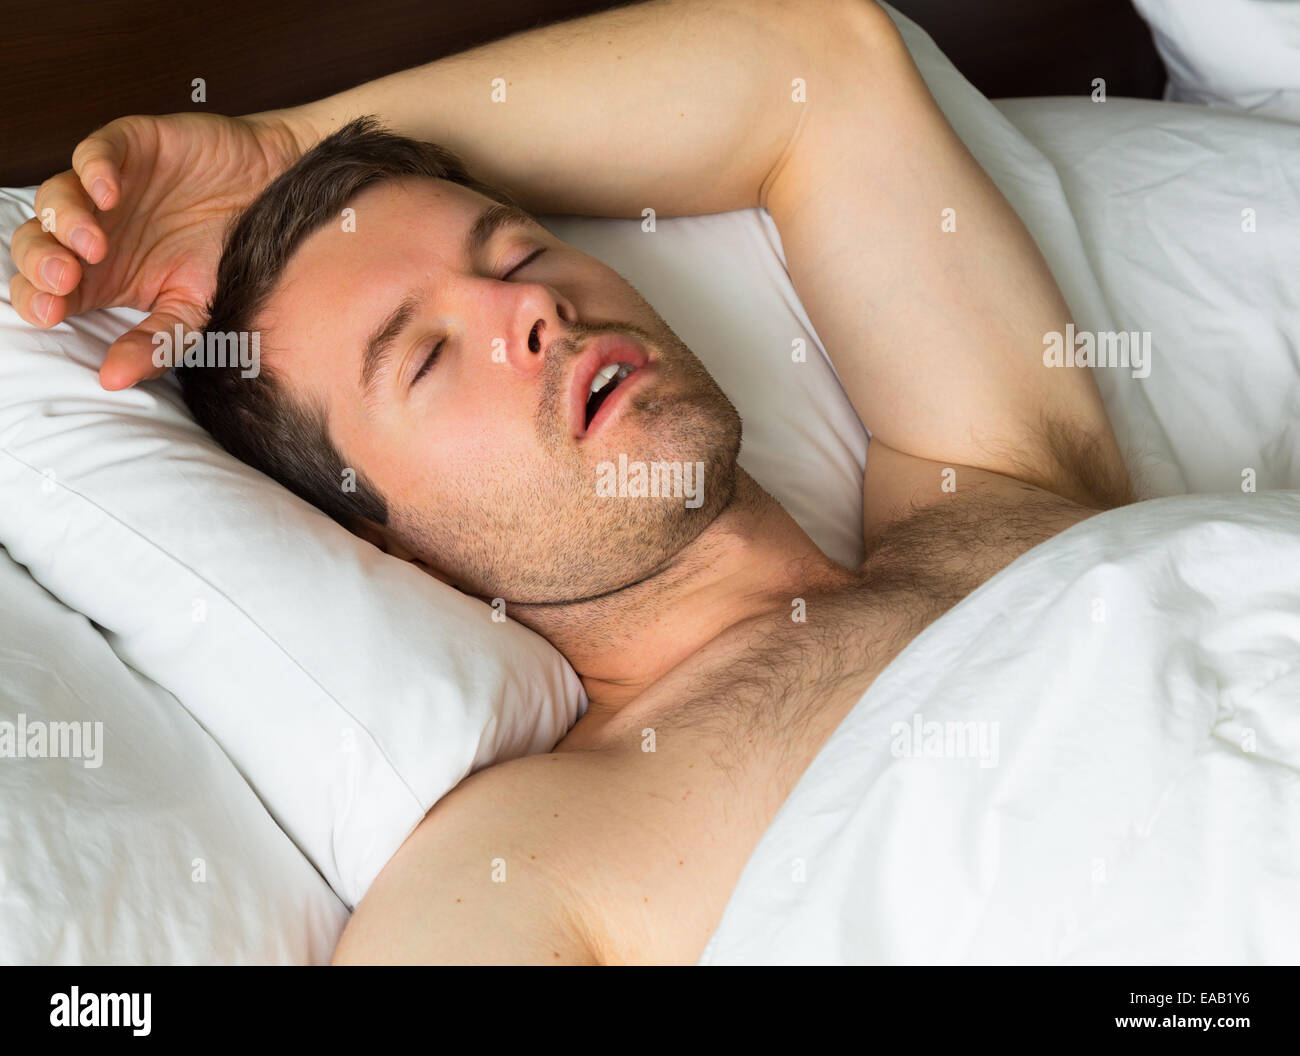 A sleeping man in bed with his arm up - Stock Image